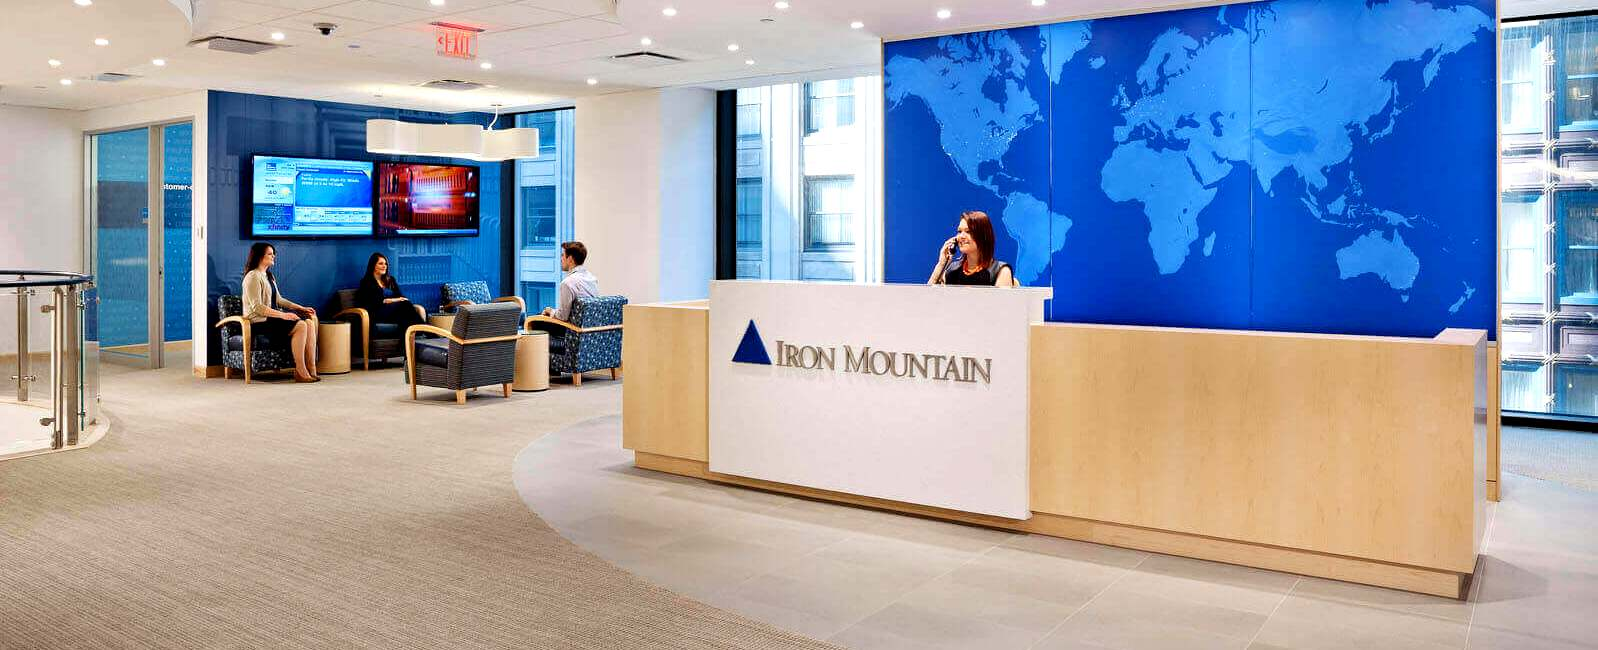 Iron Mountain expands in Philippines via Lane Archive acquisition